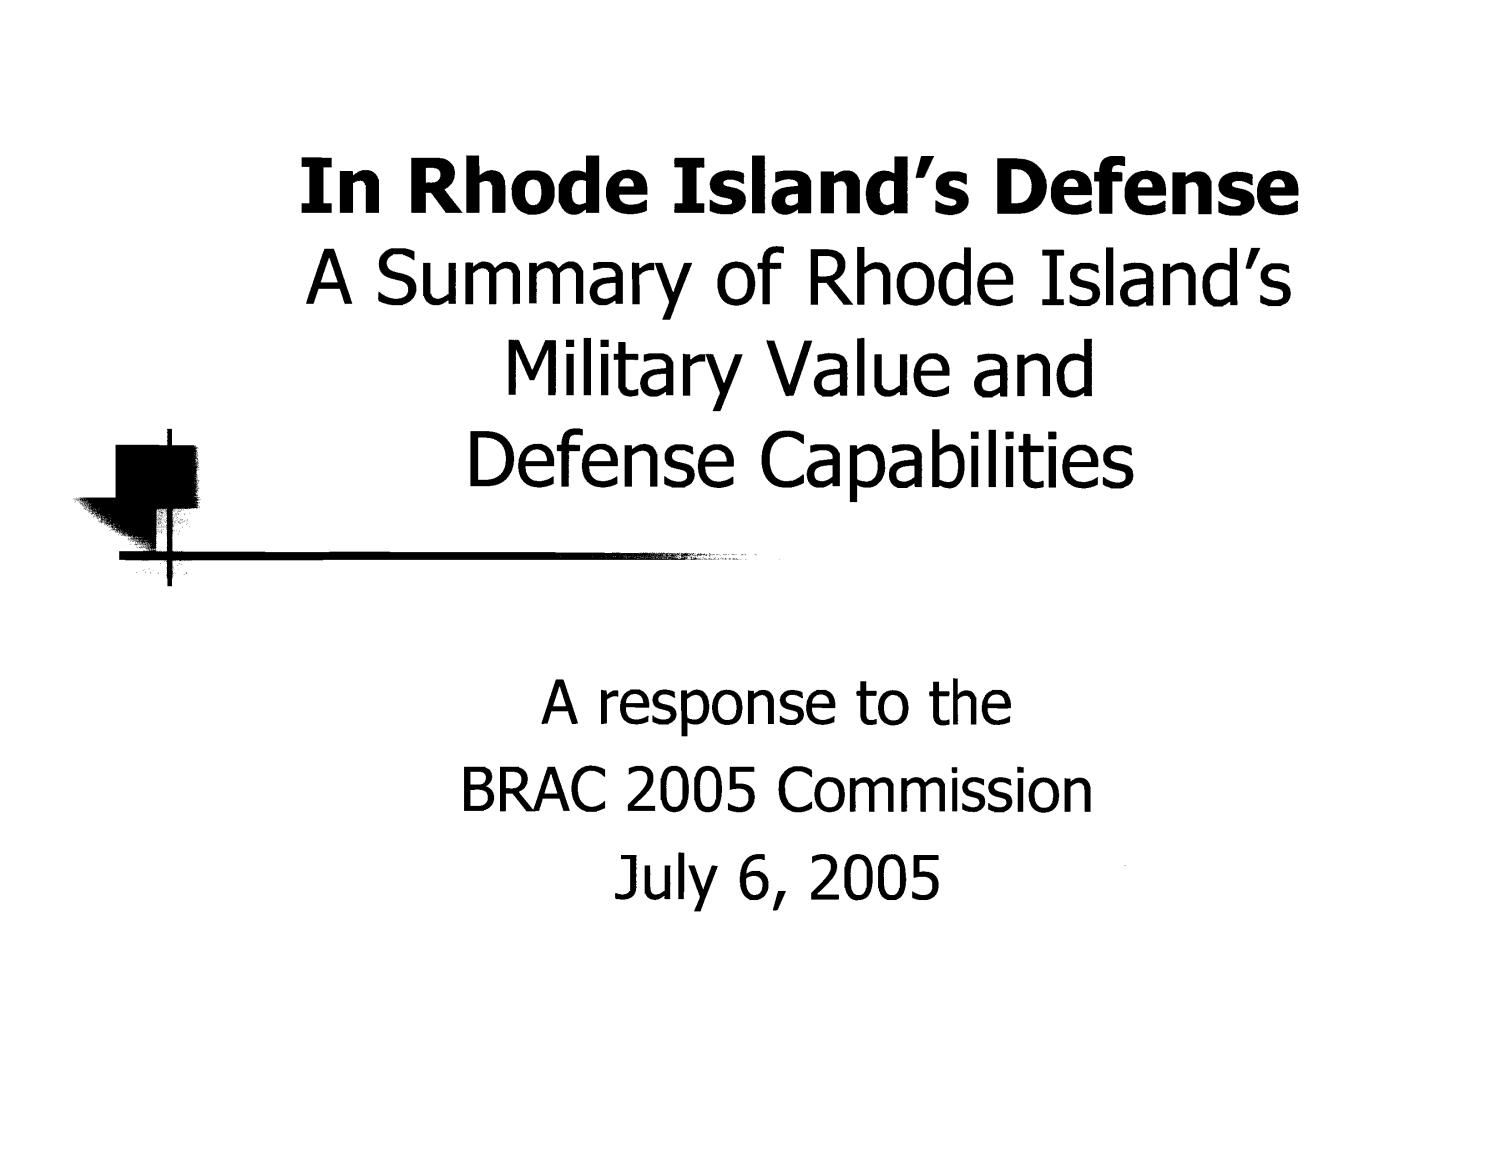 Rhode Island = Military Value Slide Show                                                                                                      [Sequence #]: 2 of 14